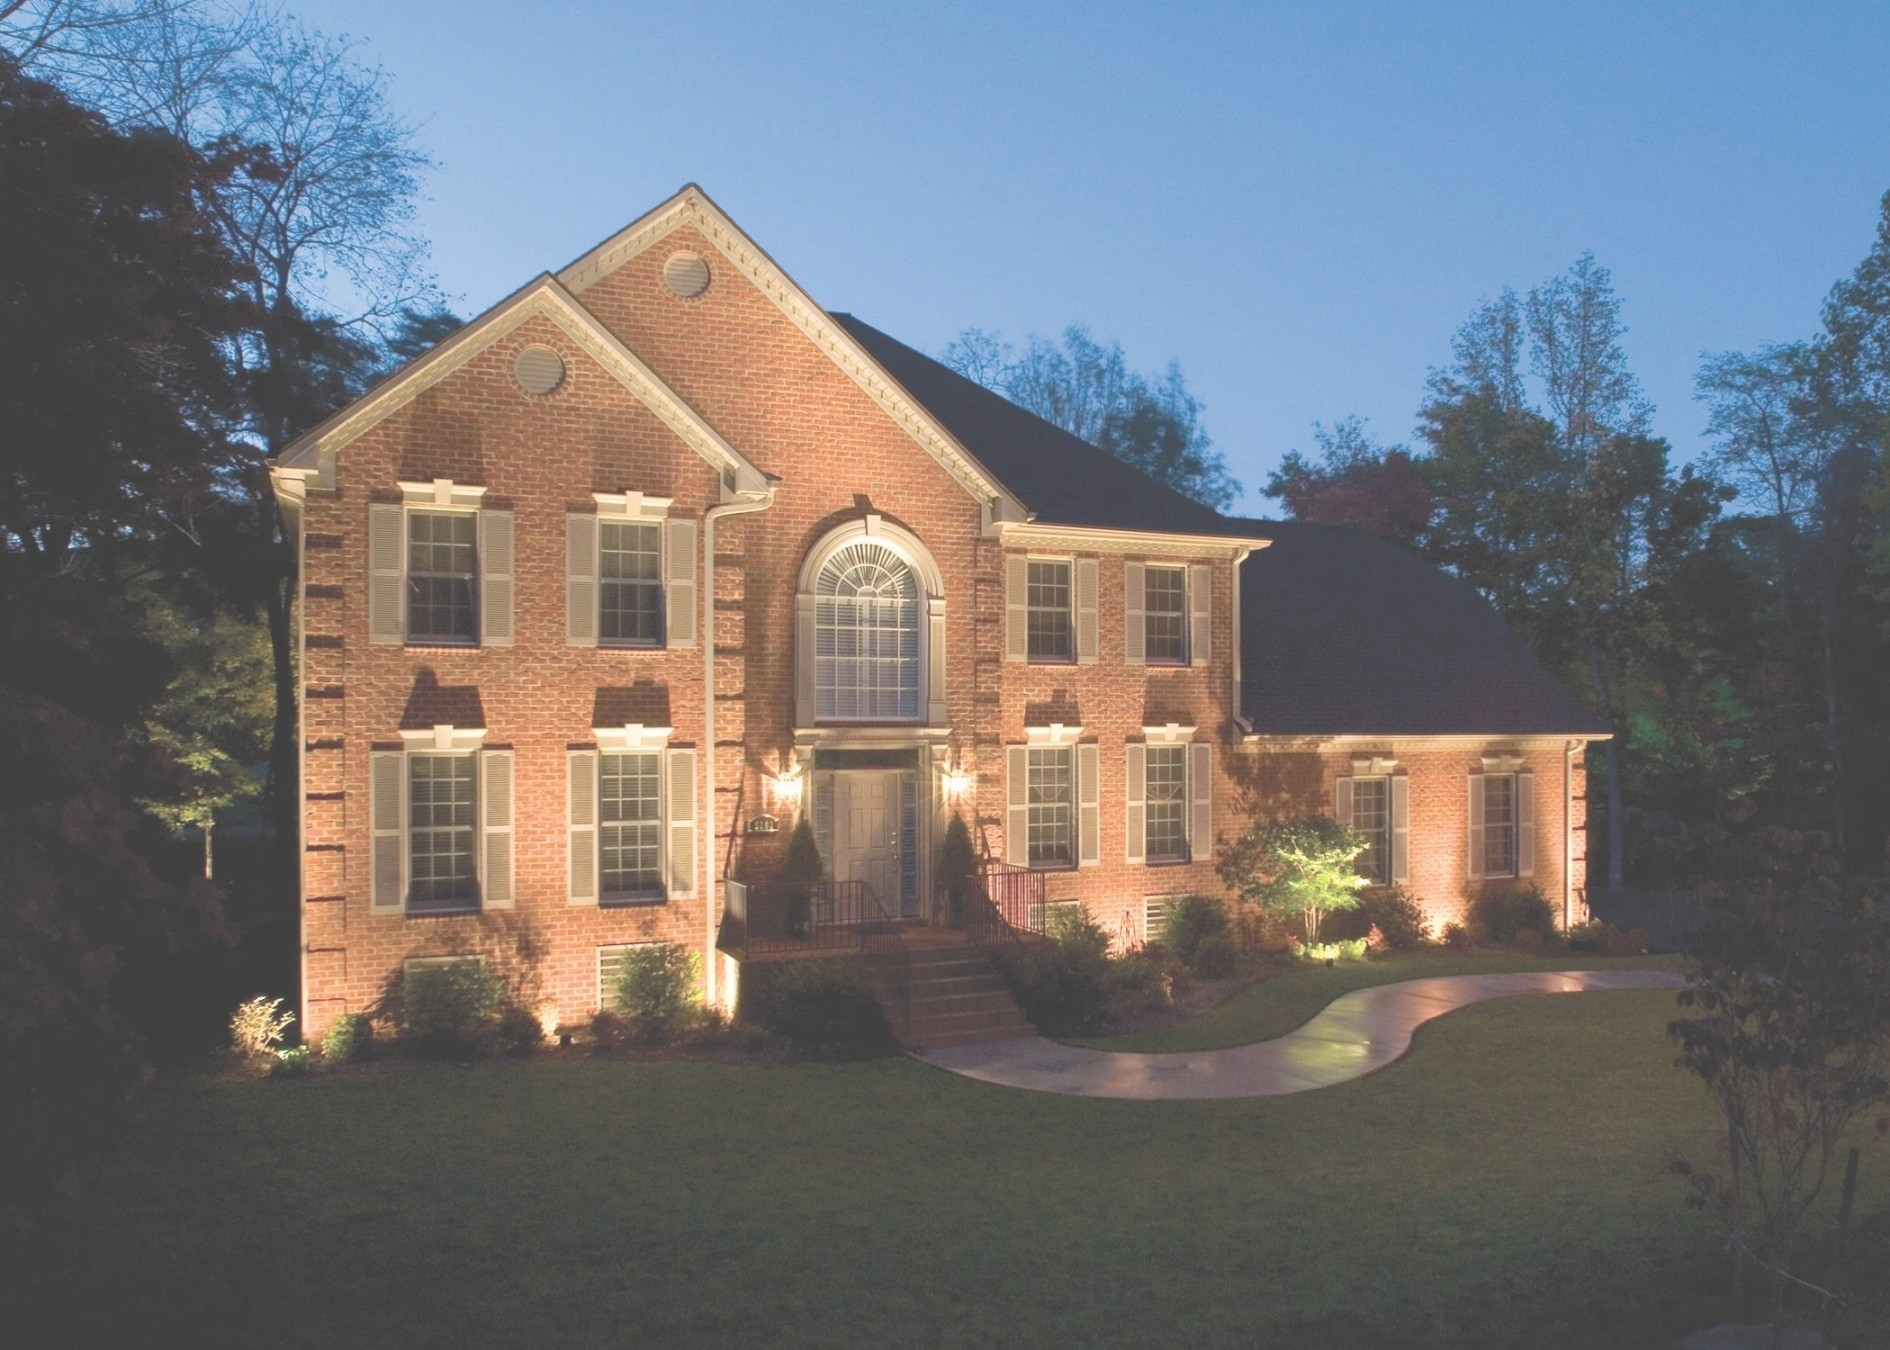 6 Reasons For Outdoor Lighting | Kg Landscape Management With with regard to Outdoor Lanterns for House (Image 2 of 20)